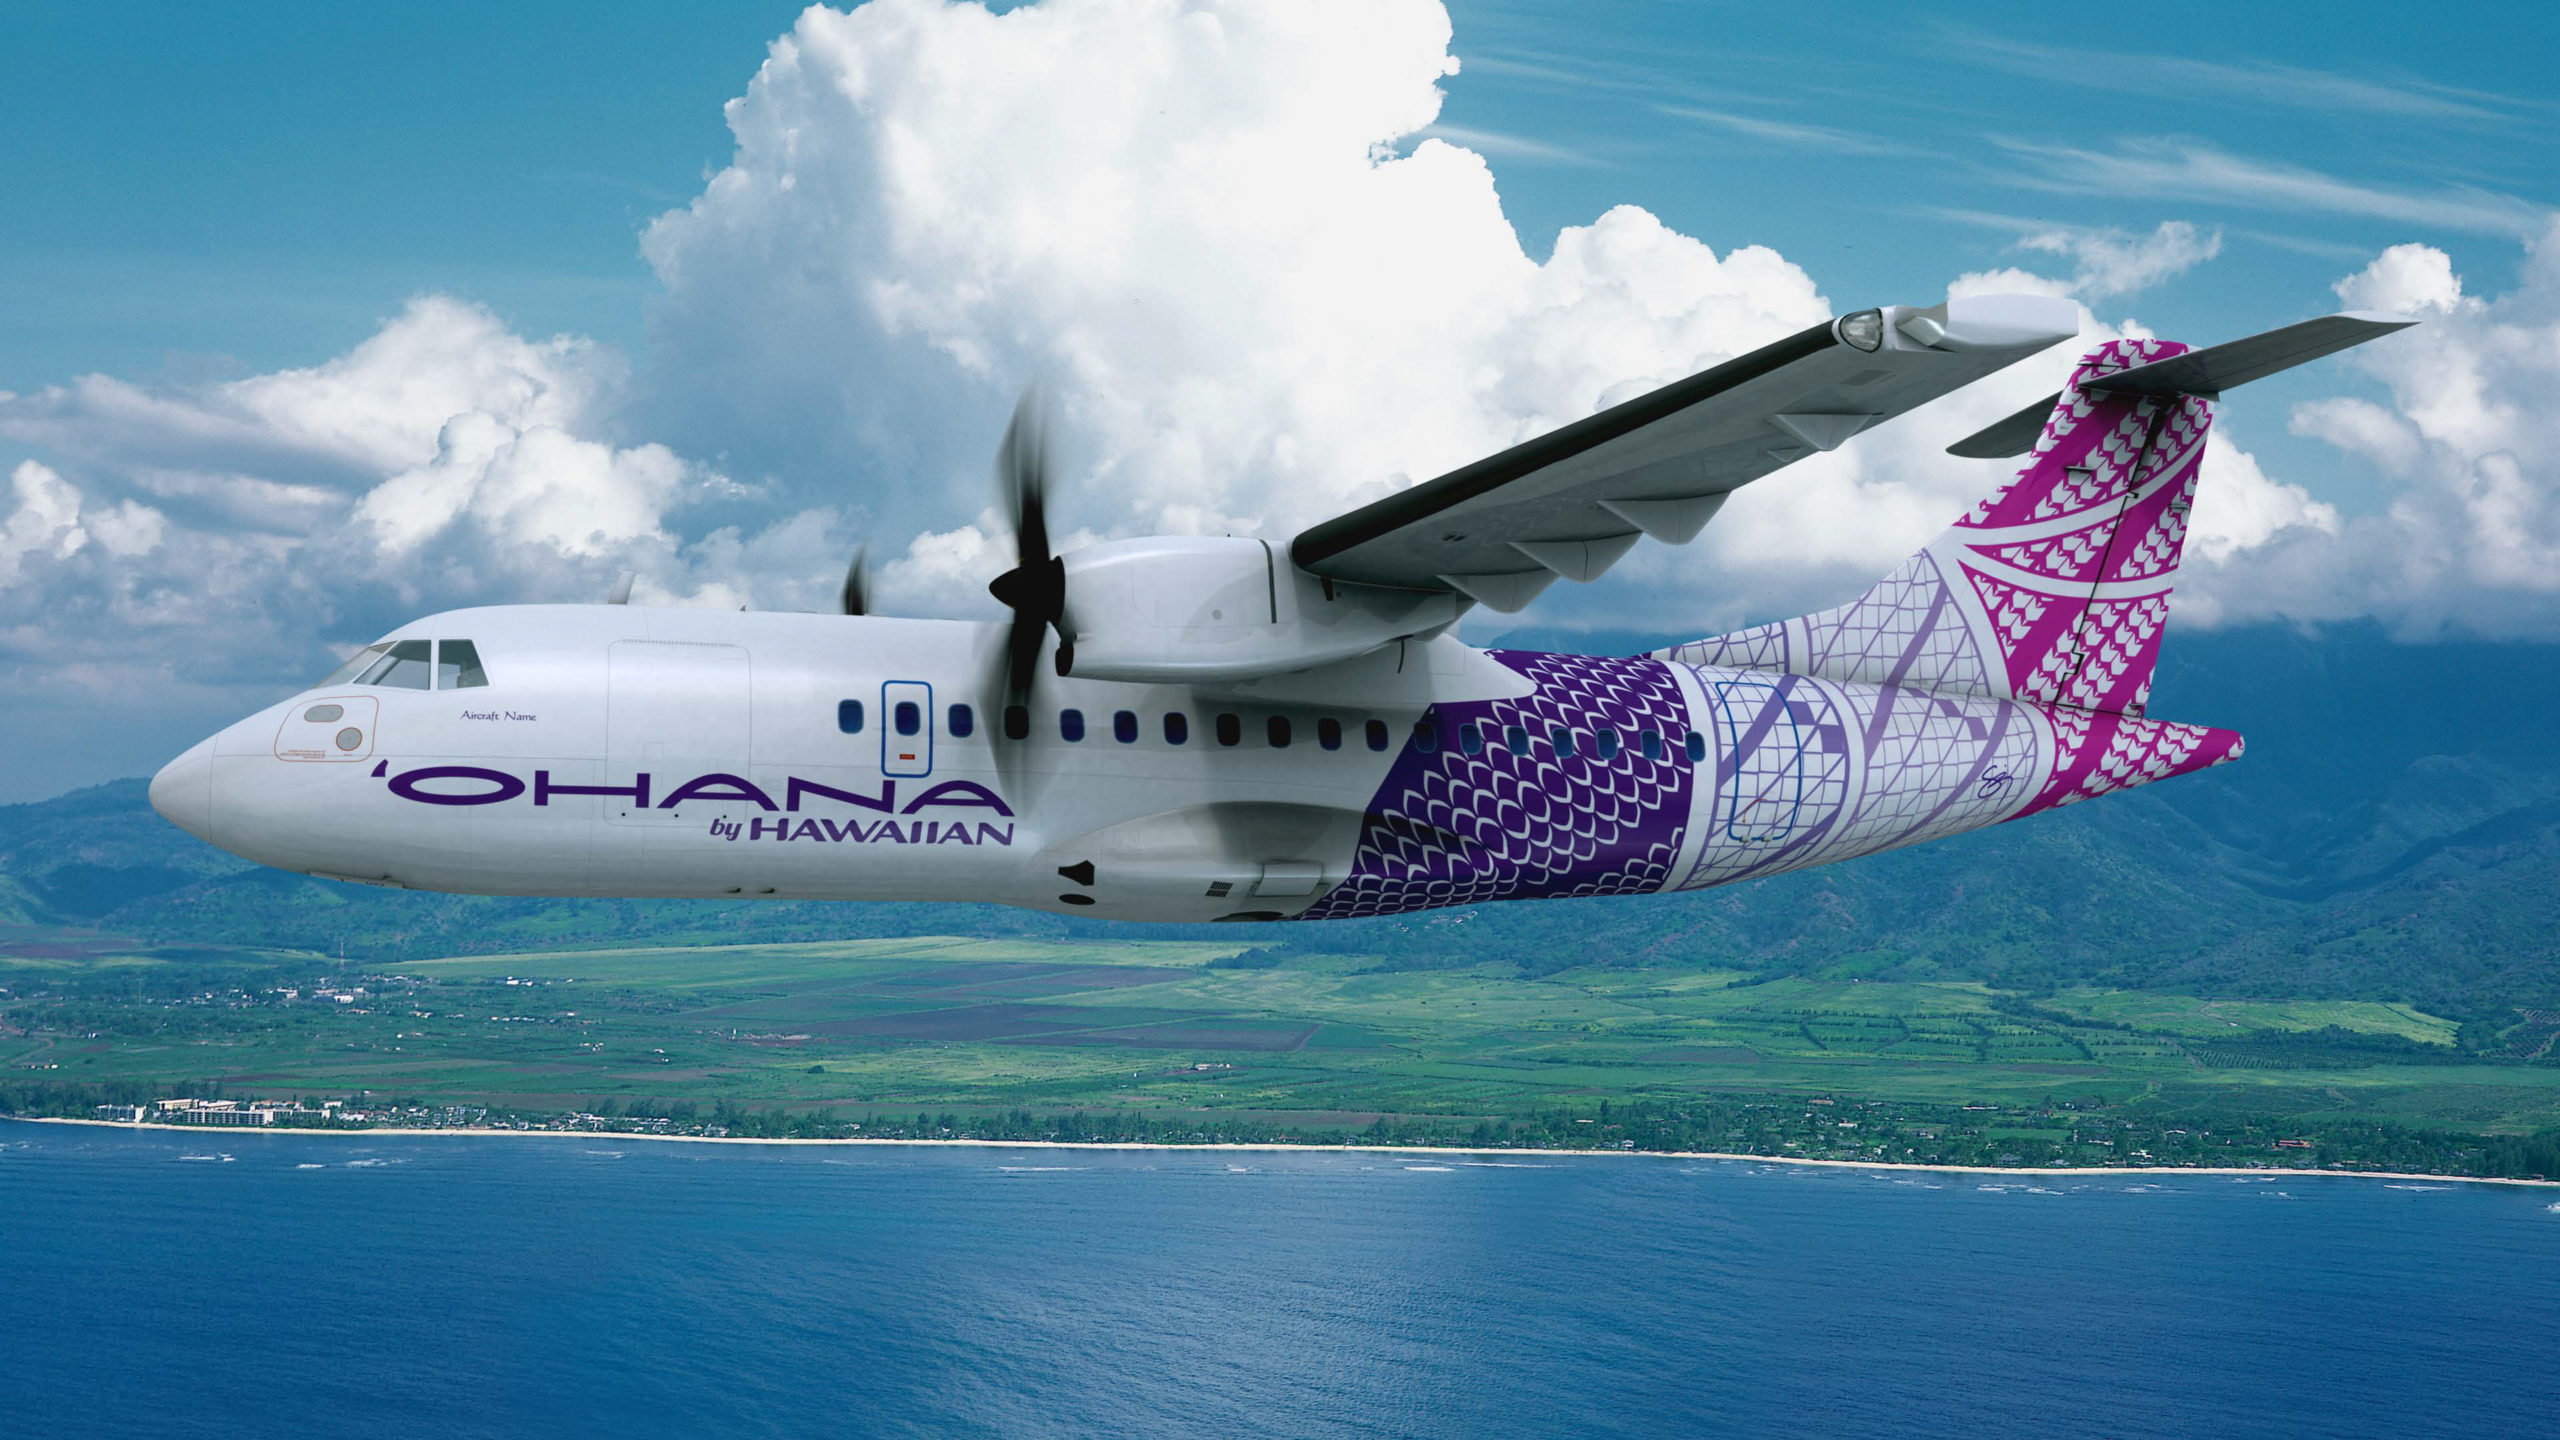 'Ohana by Hawaiian to Suspend Service